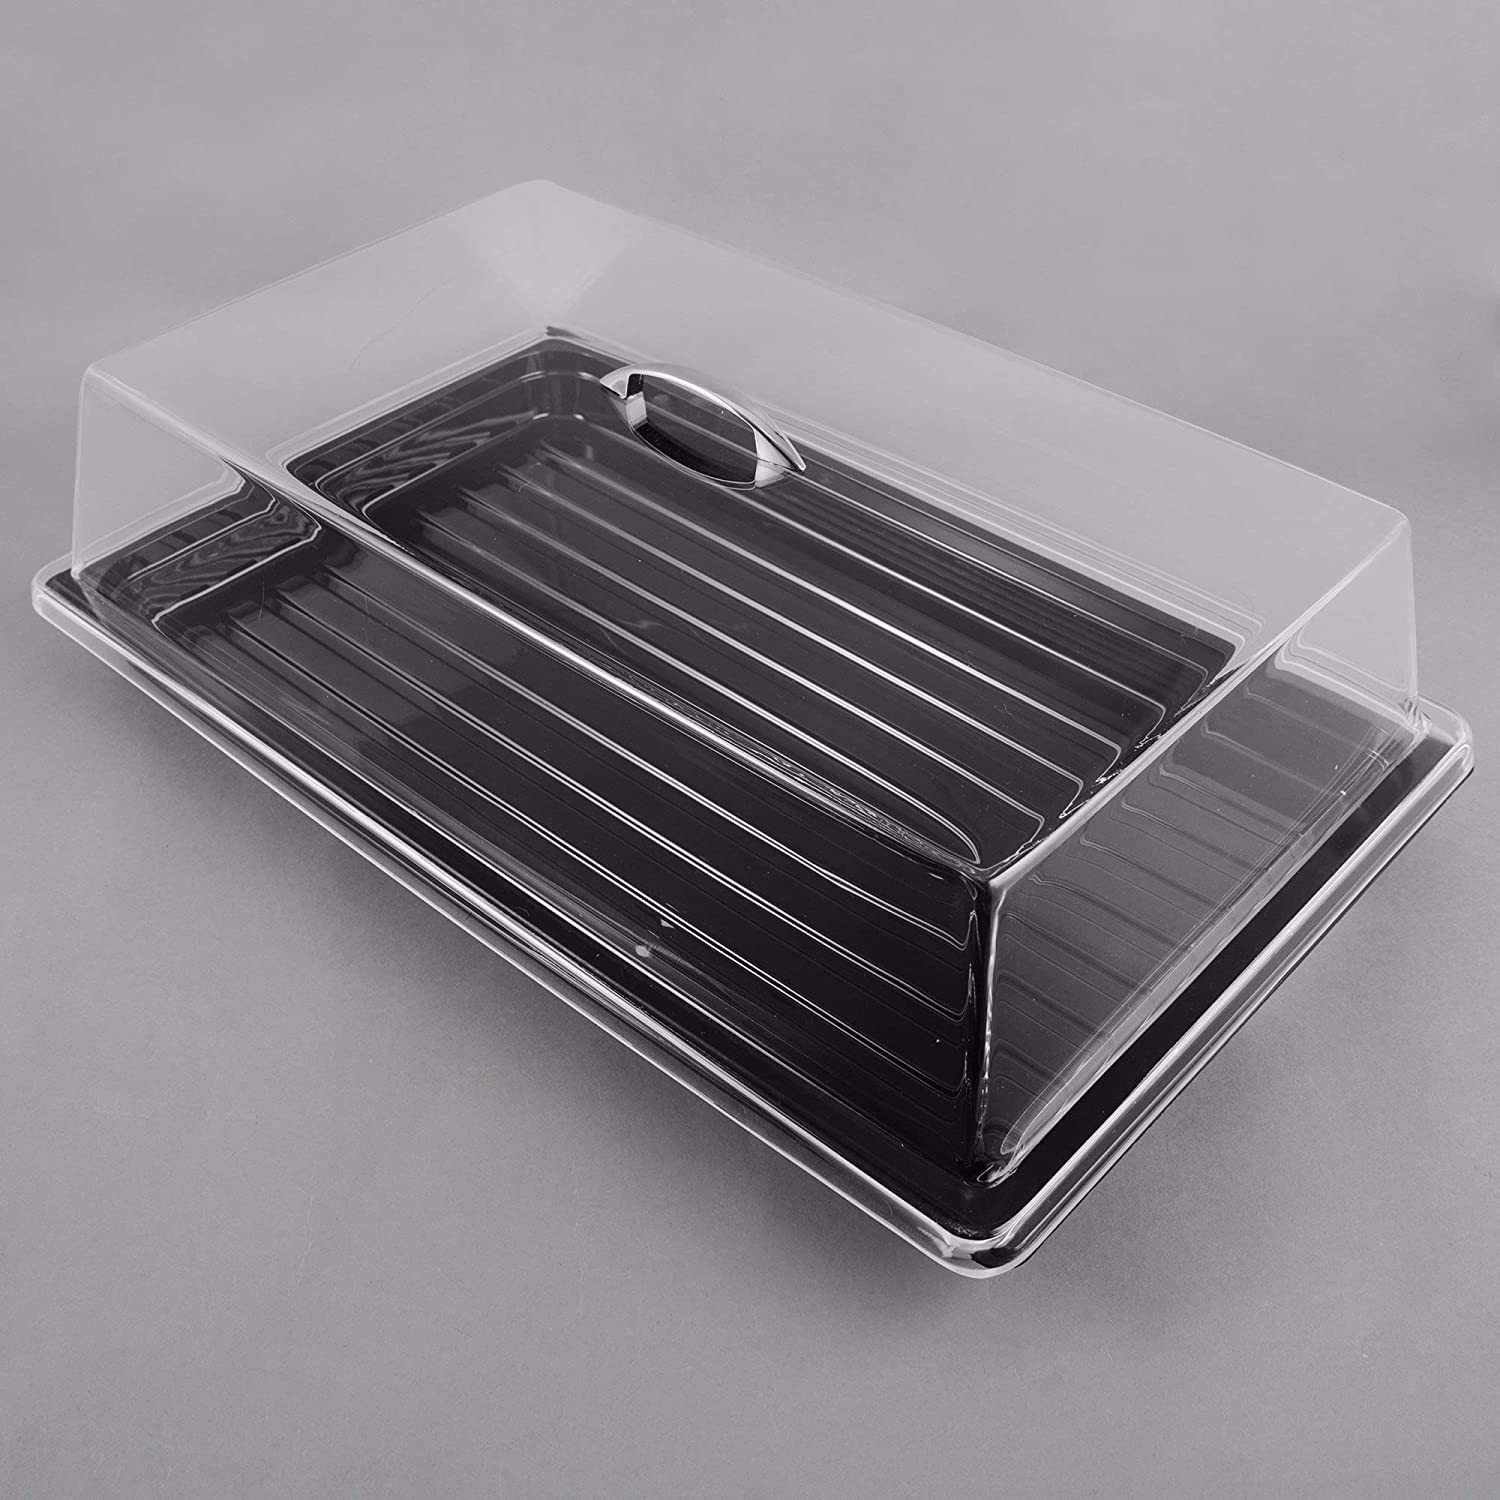 Sample and Display Tray Kit with Black Polycarbonate Tray and Acrylic Rectangular Cover - 12' x 20' By TableTop King